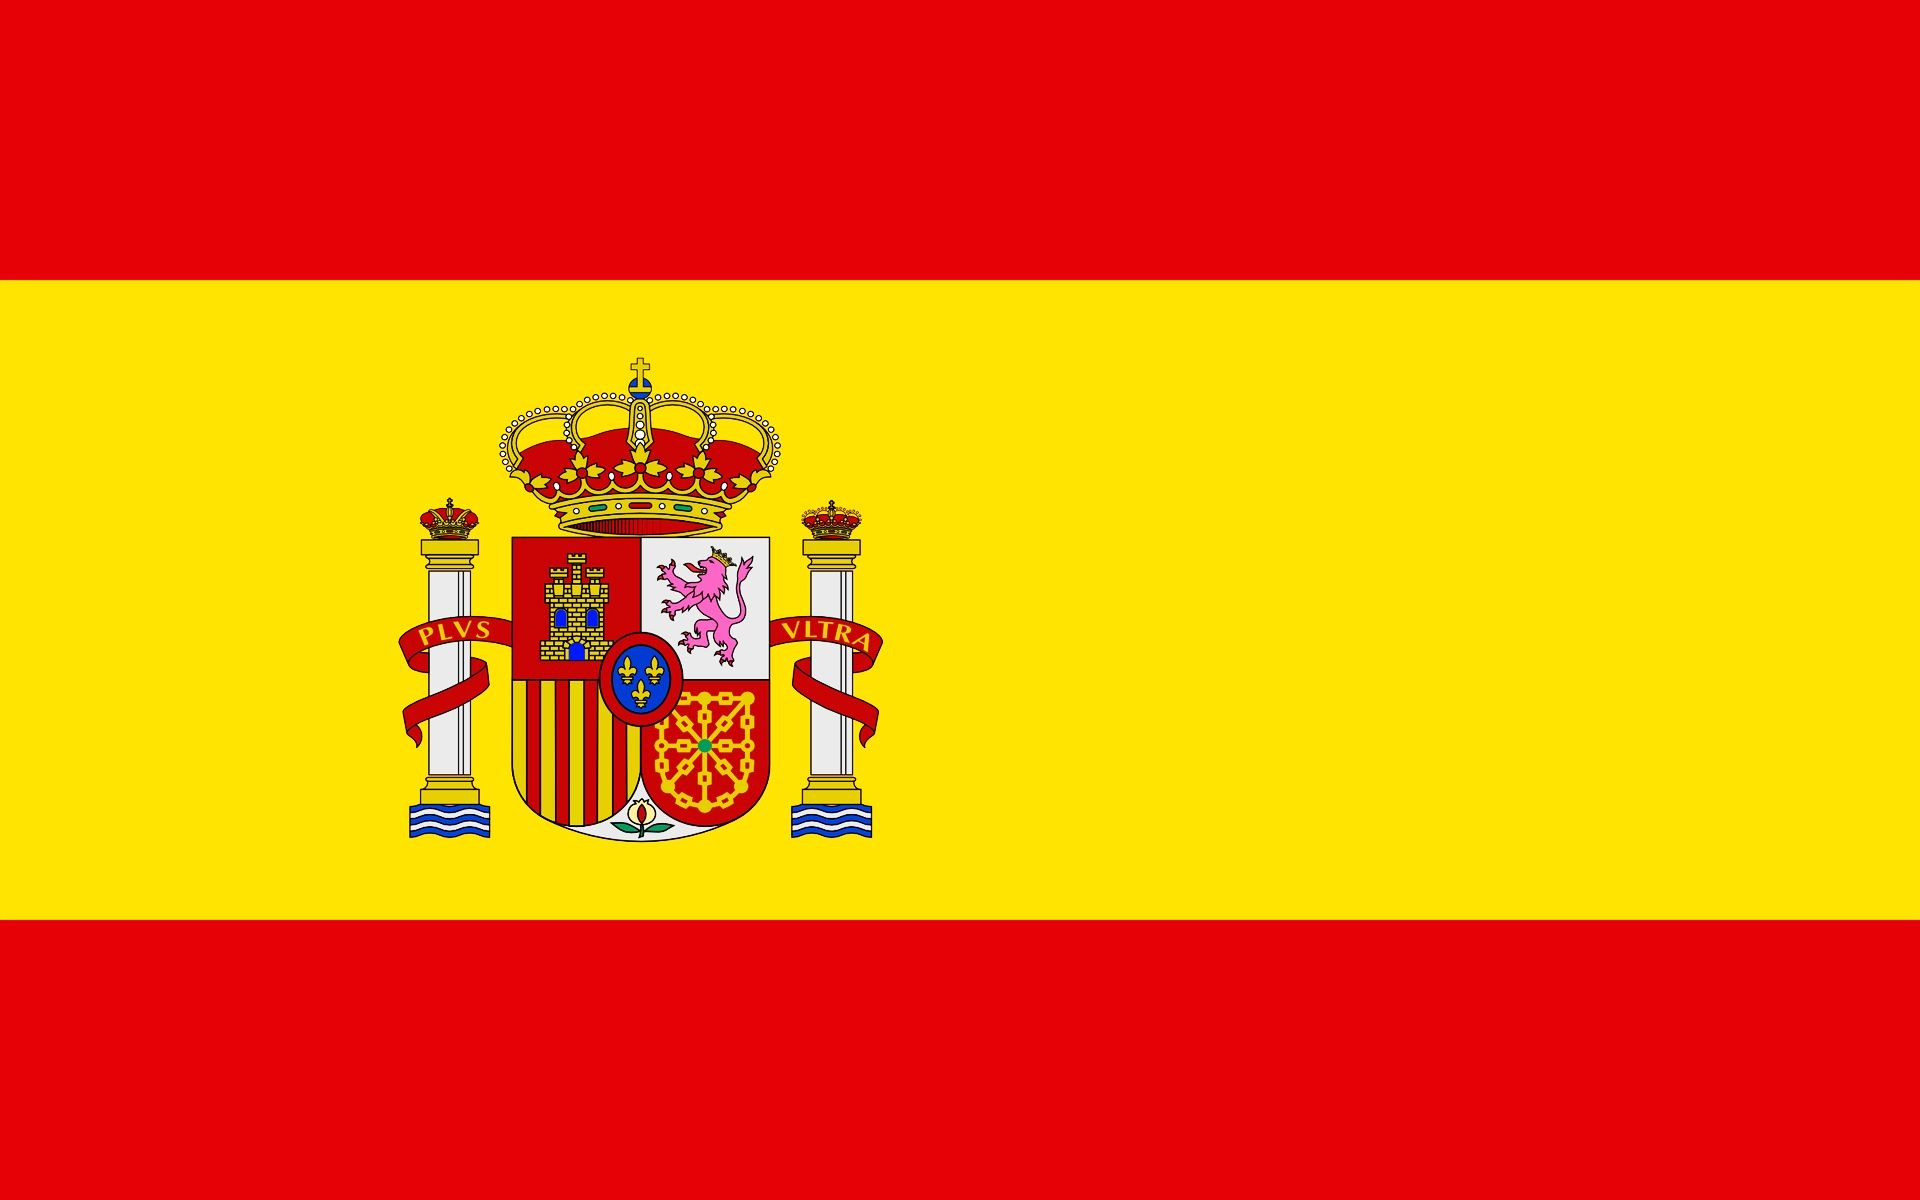 Pin By Mara On Flag Spain Flag Spanish Flags Facts About Spain